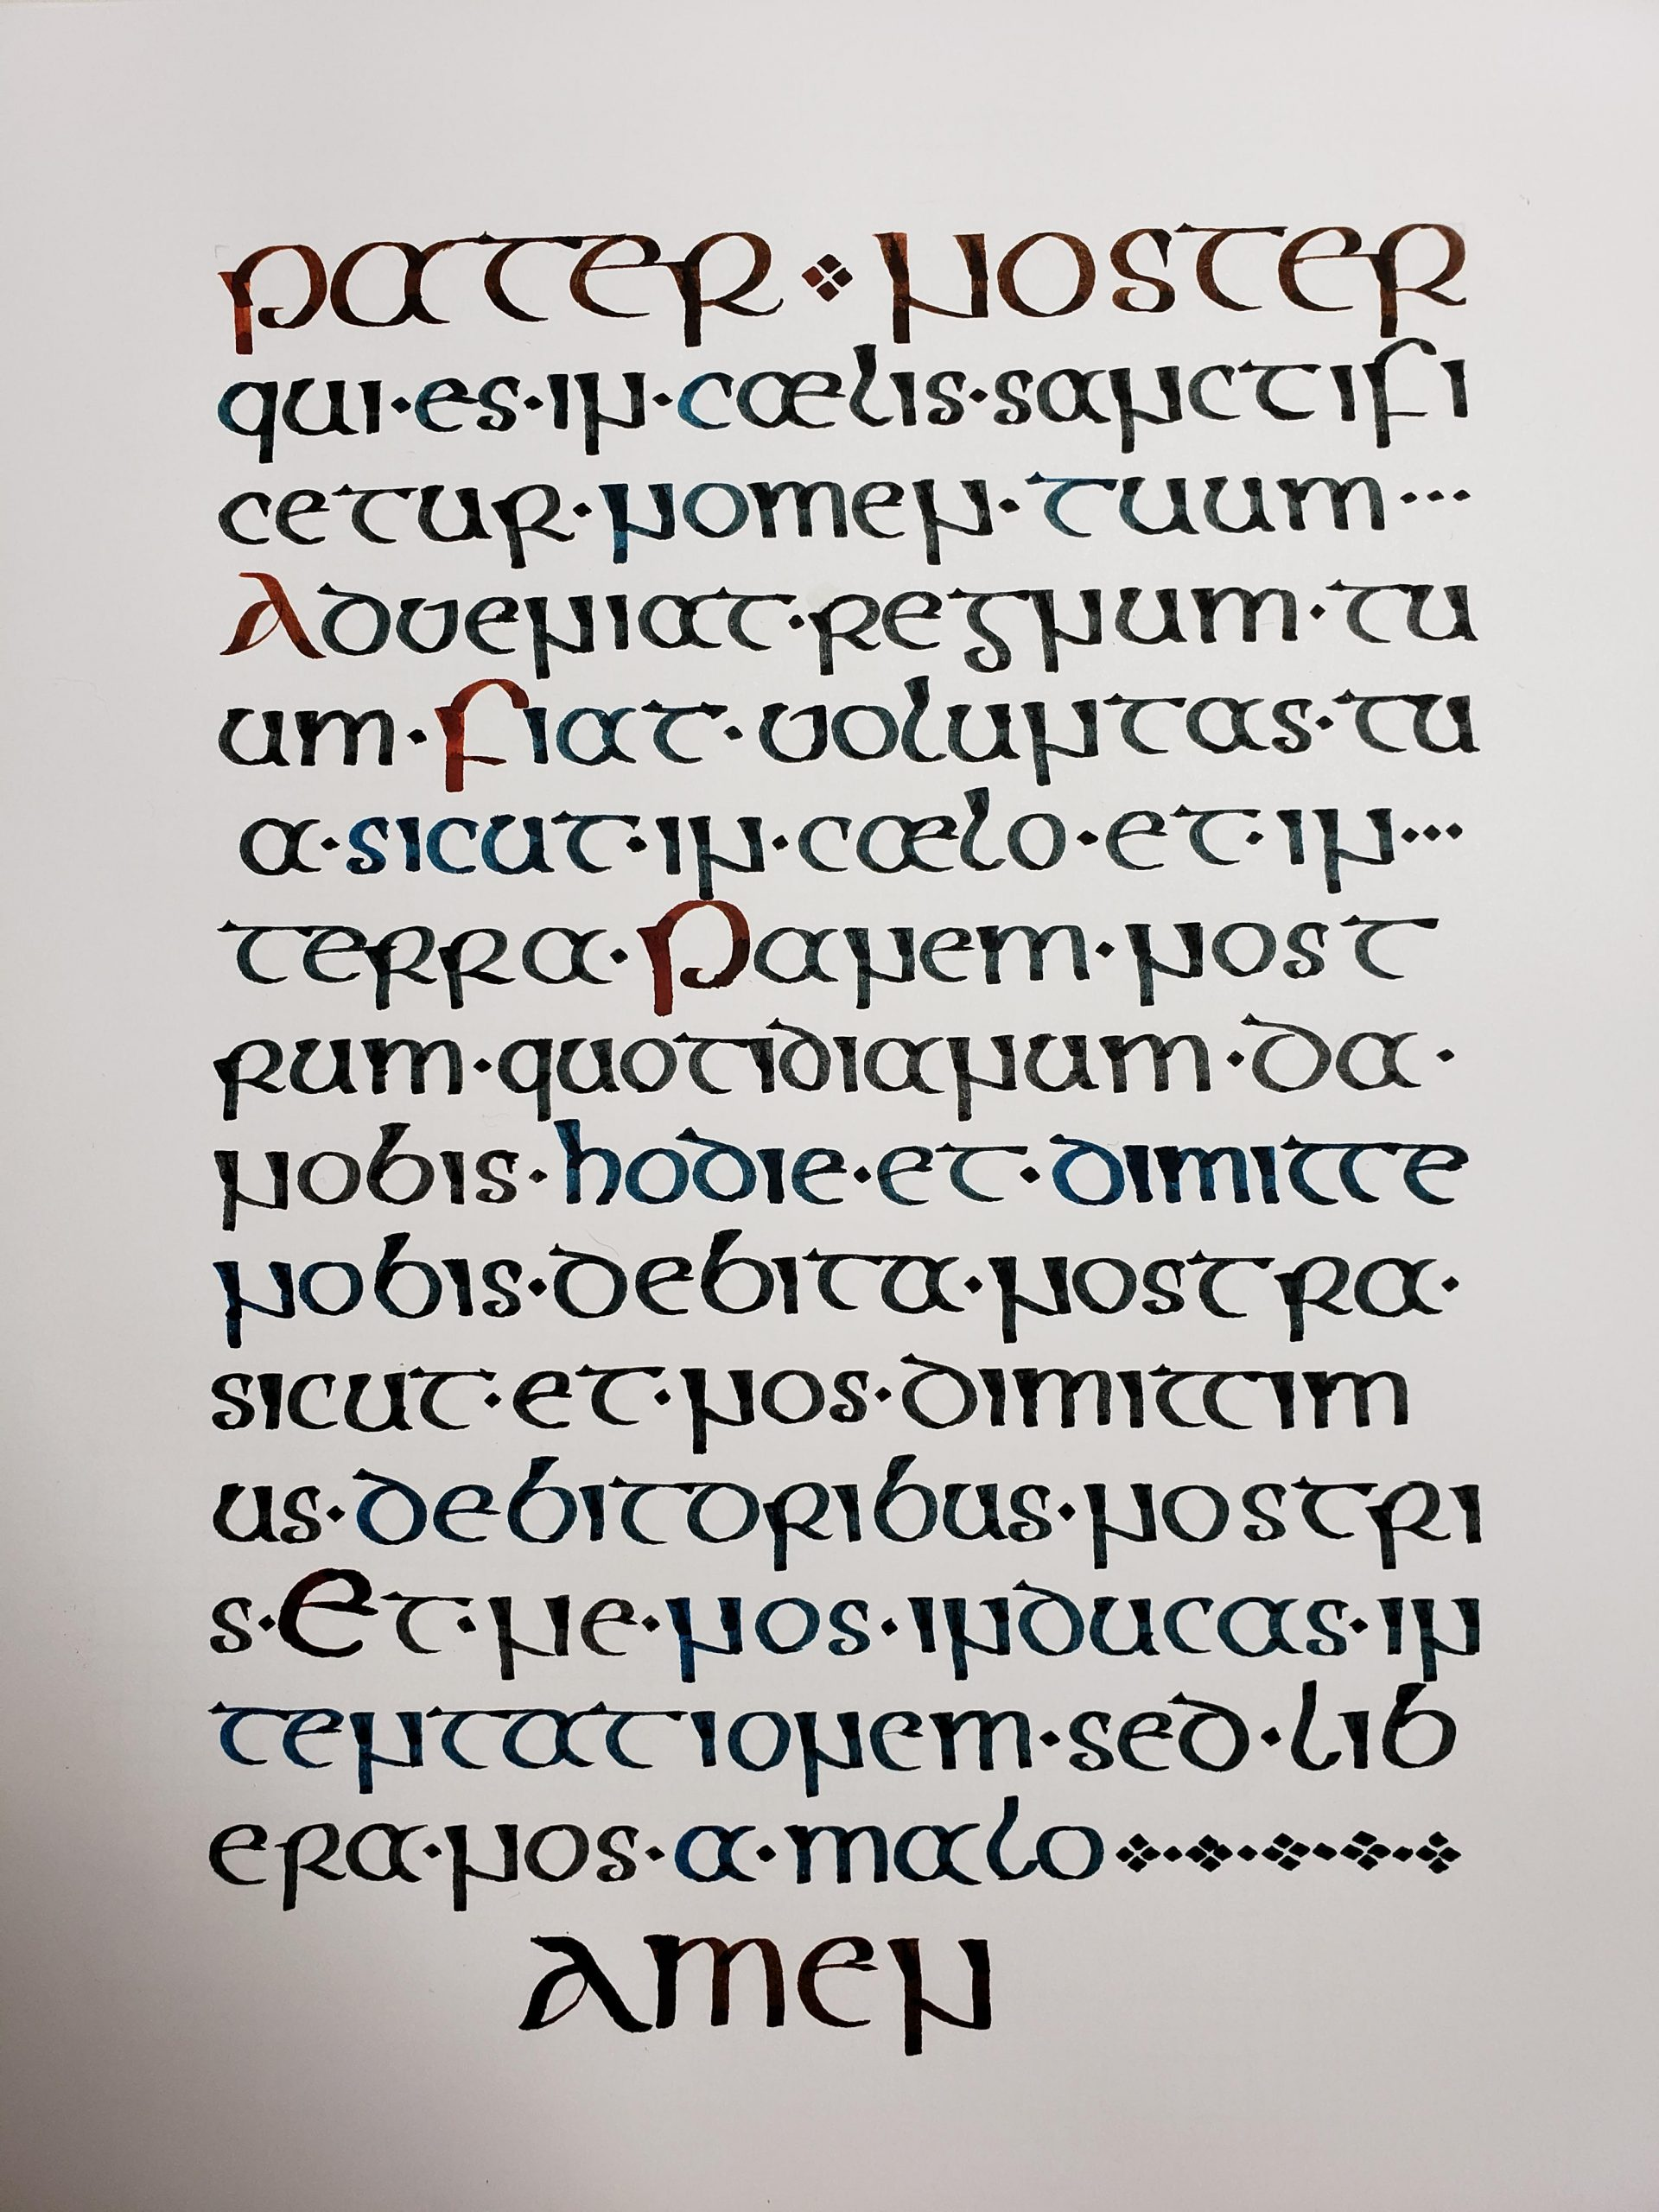 Just Finished! Pater Noster (Our Father In Latin) In Insular intérieur Majuscule Script